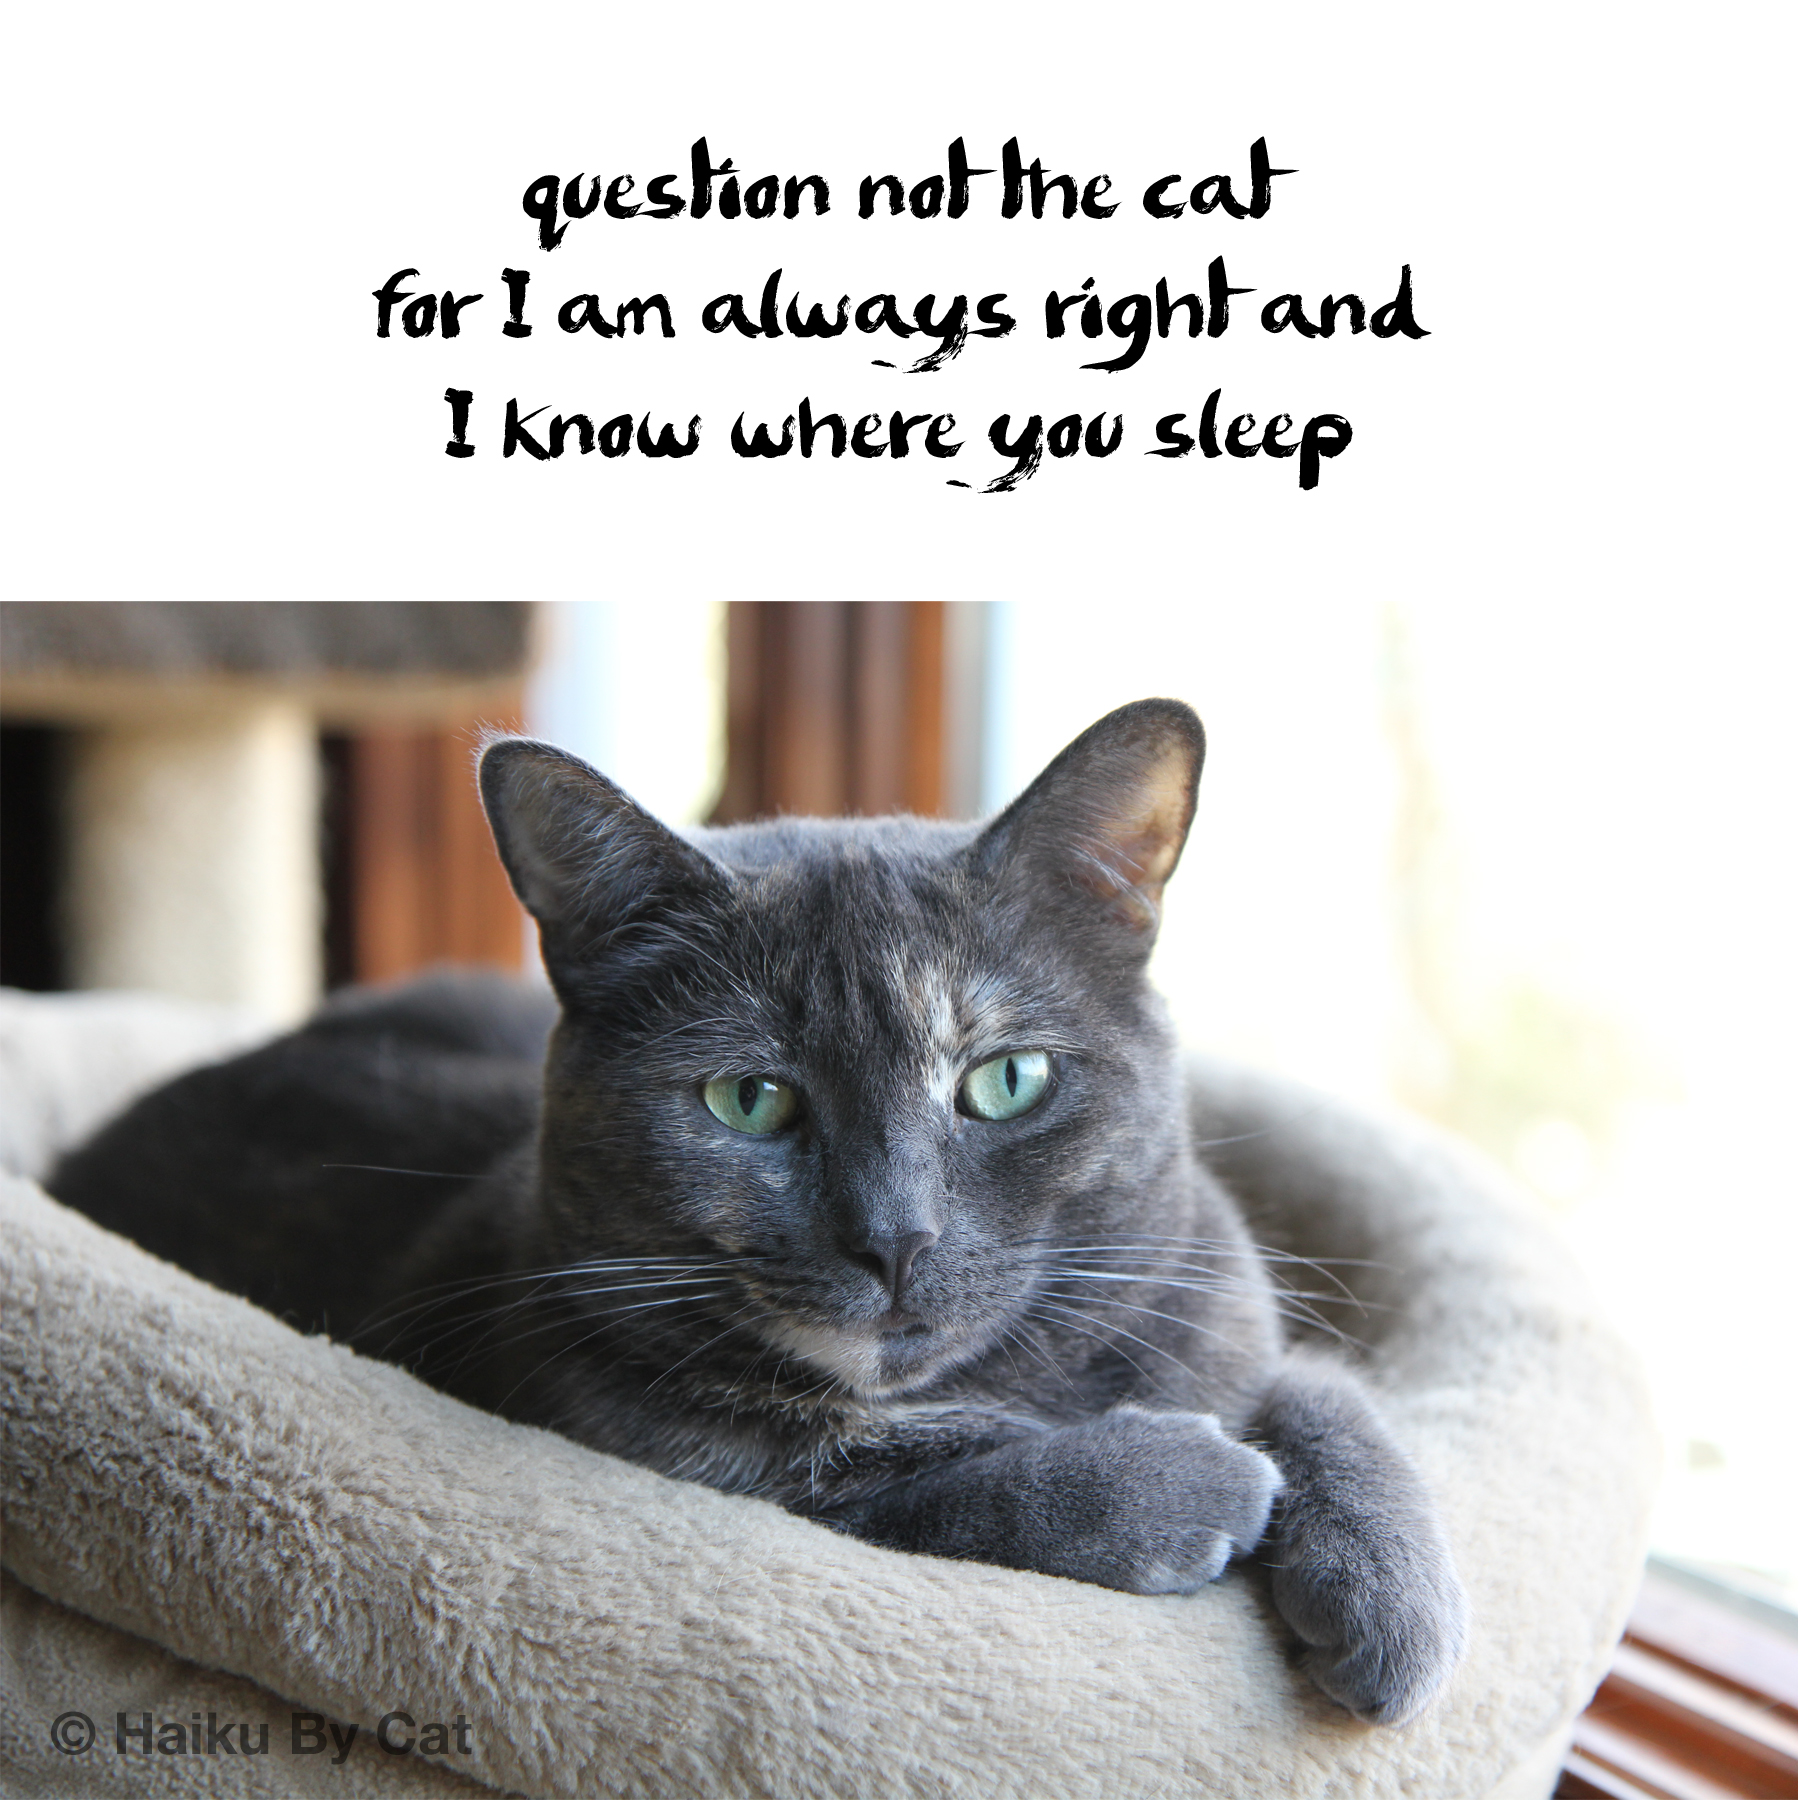 question not the cat / for I am always right and / I know where you sleep